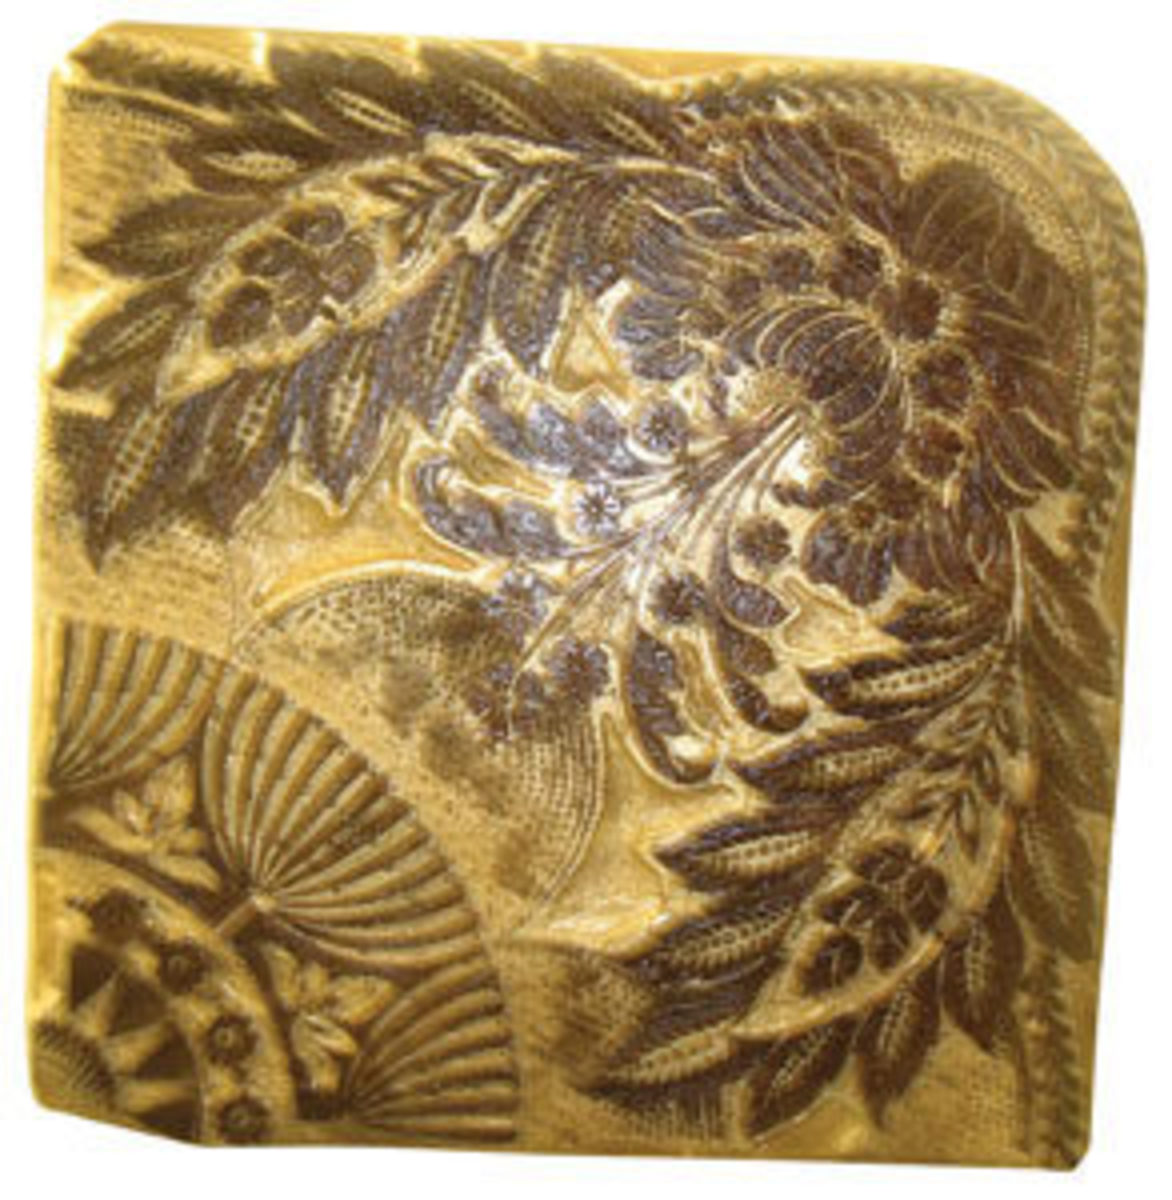 A fantastic hand-carved wood block, this one is busy with multiple patterns working together; $250.